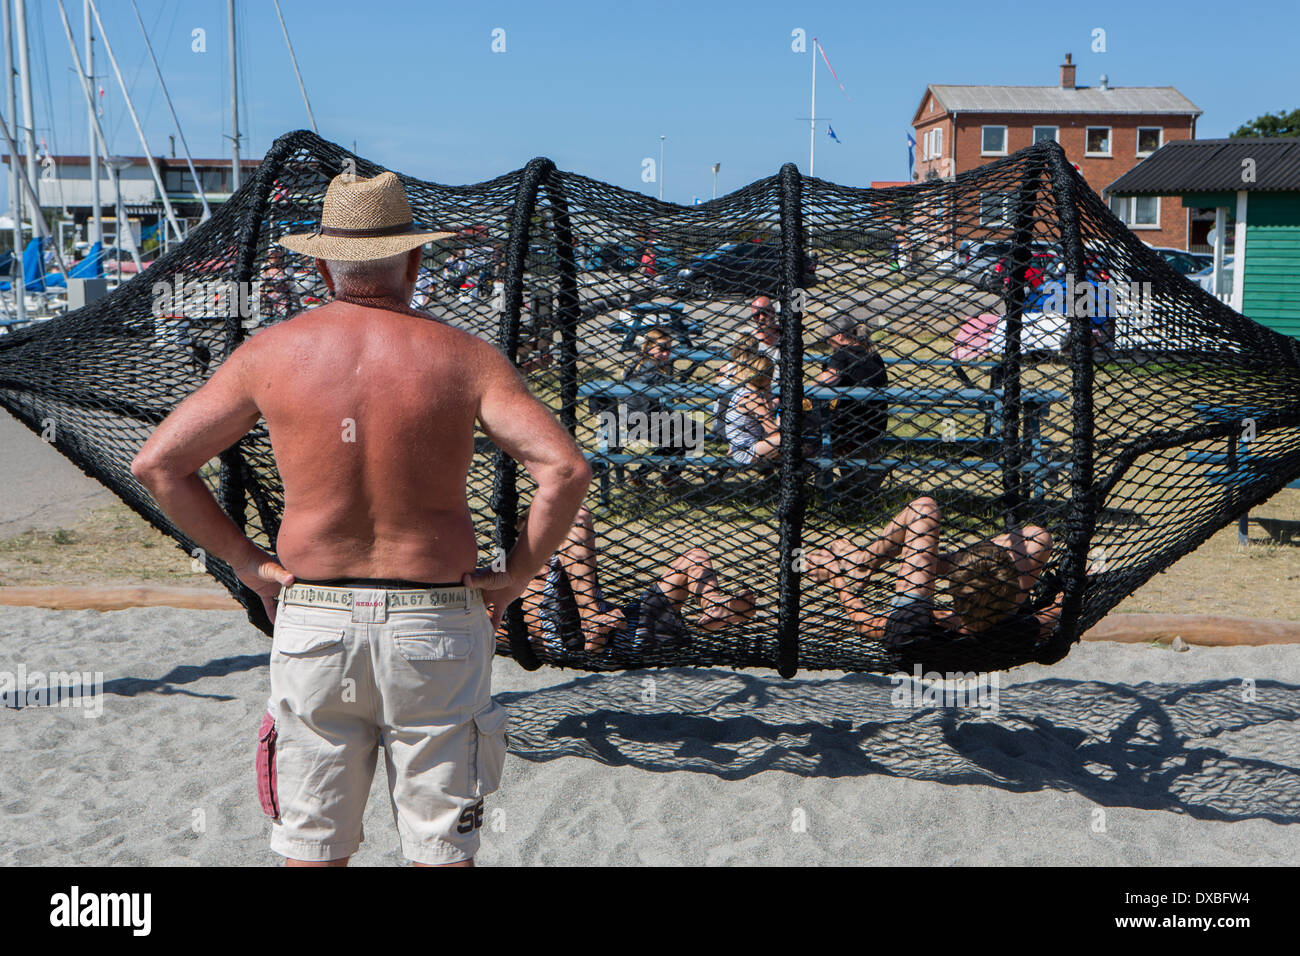 A man looks on as children play - Stock Image